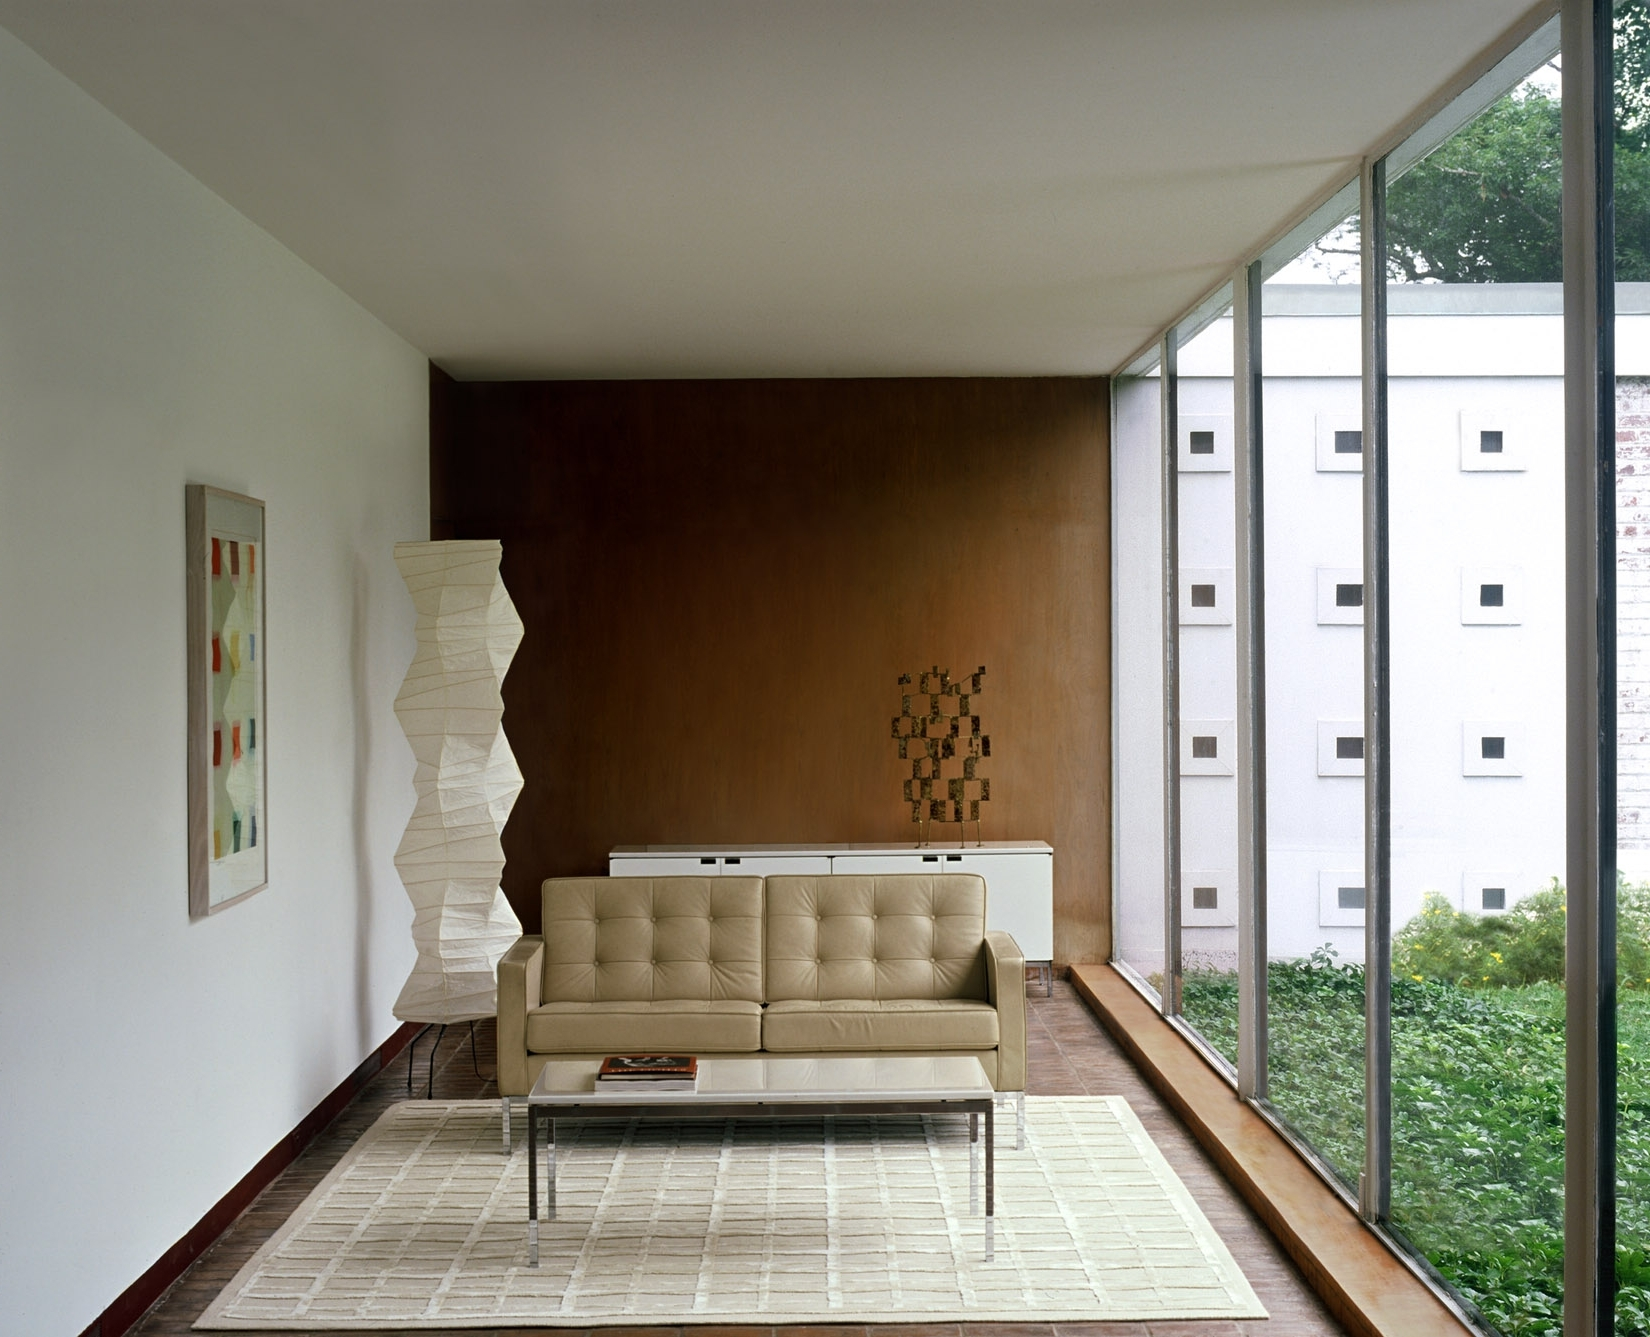 Knoll Pertaining To Florence Knoll Fabric Sofas (View 9 of 15)